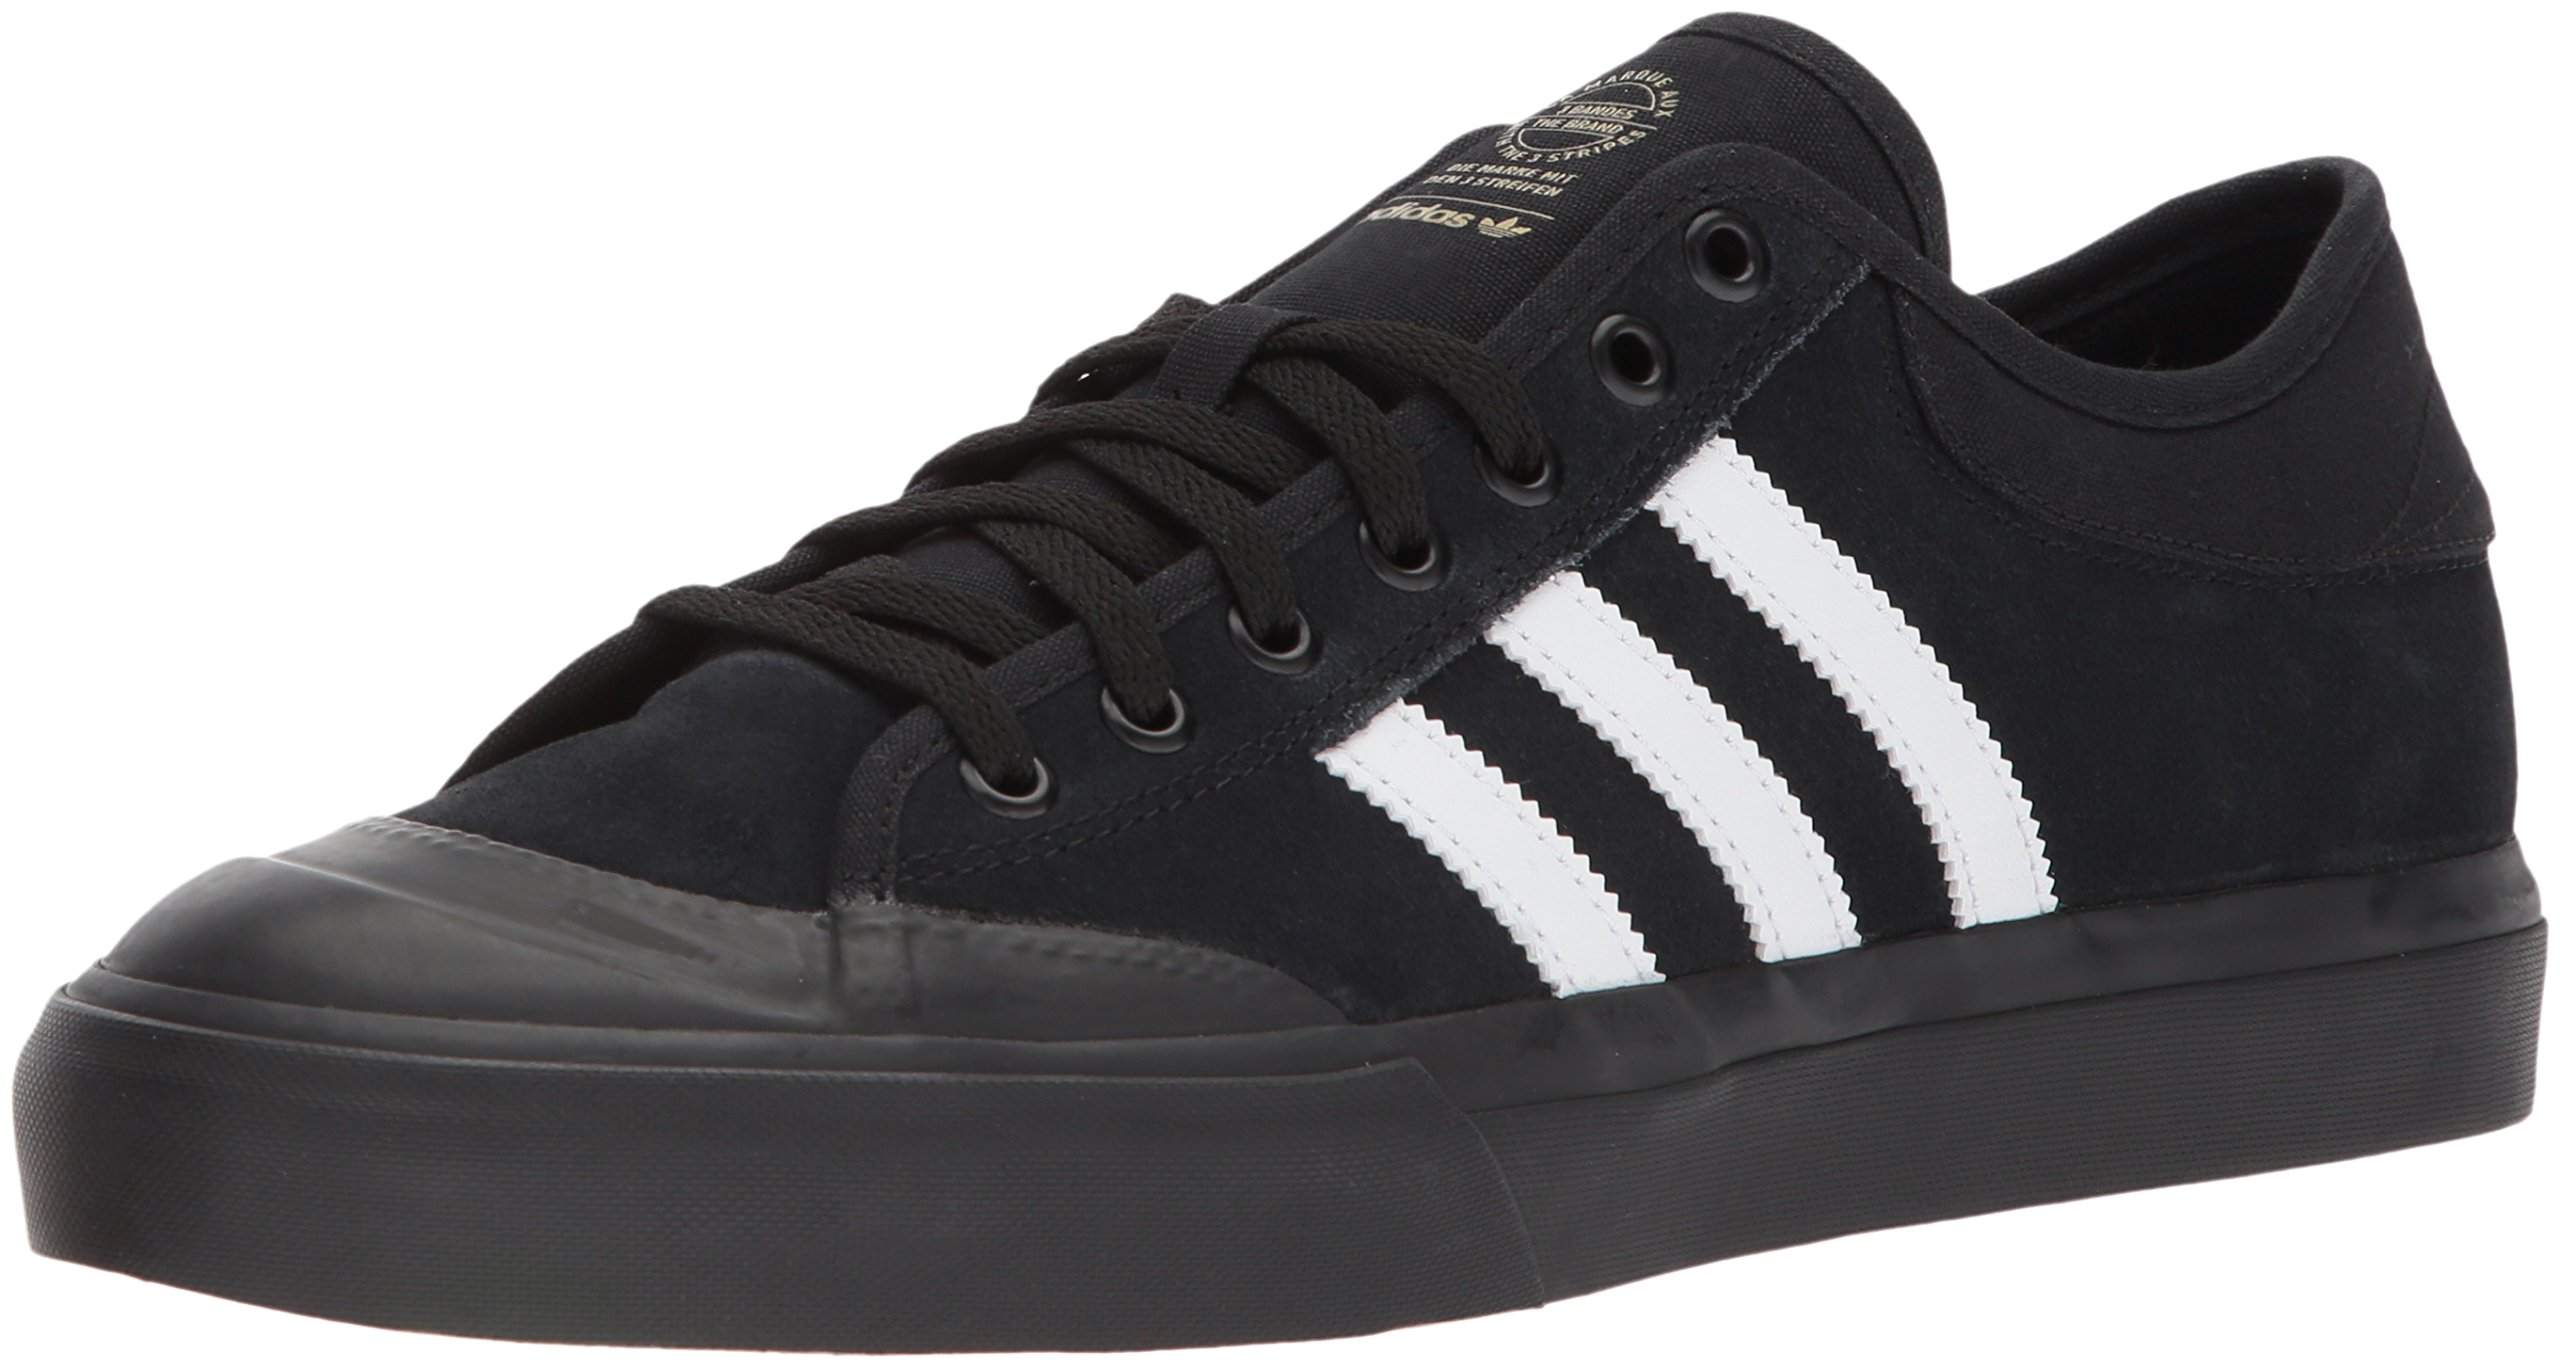 adidas Originals Men's Matchcourt, Core Black/White/Gum, 11.5 M US